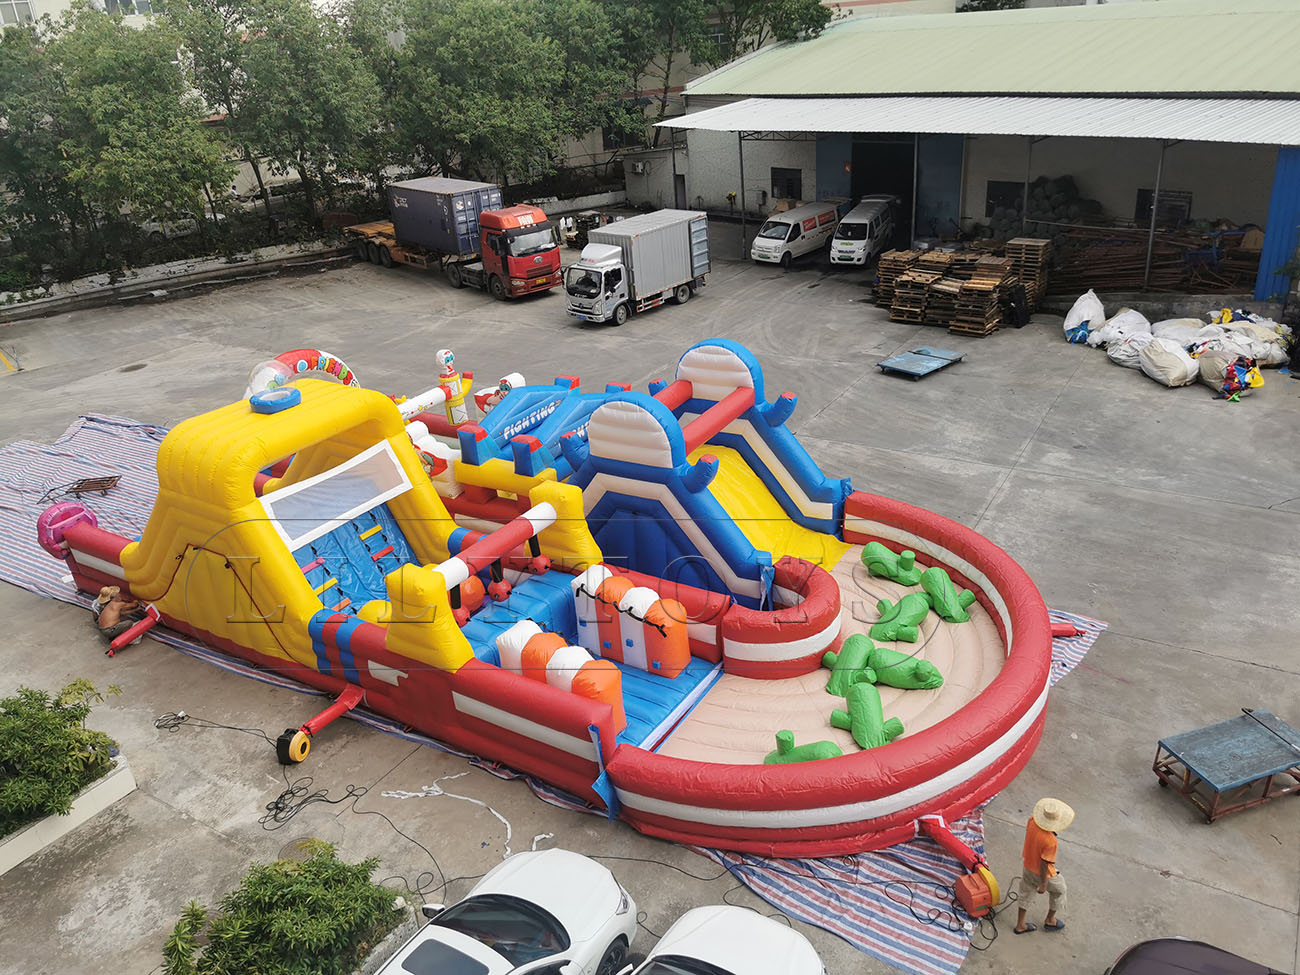 New giant obstacle course inflatable for rentals